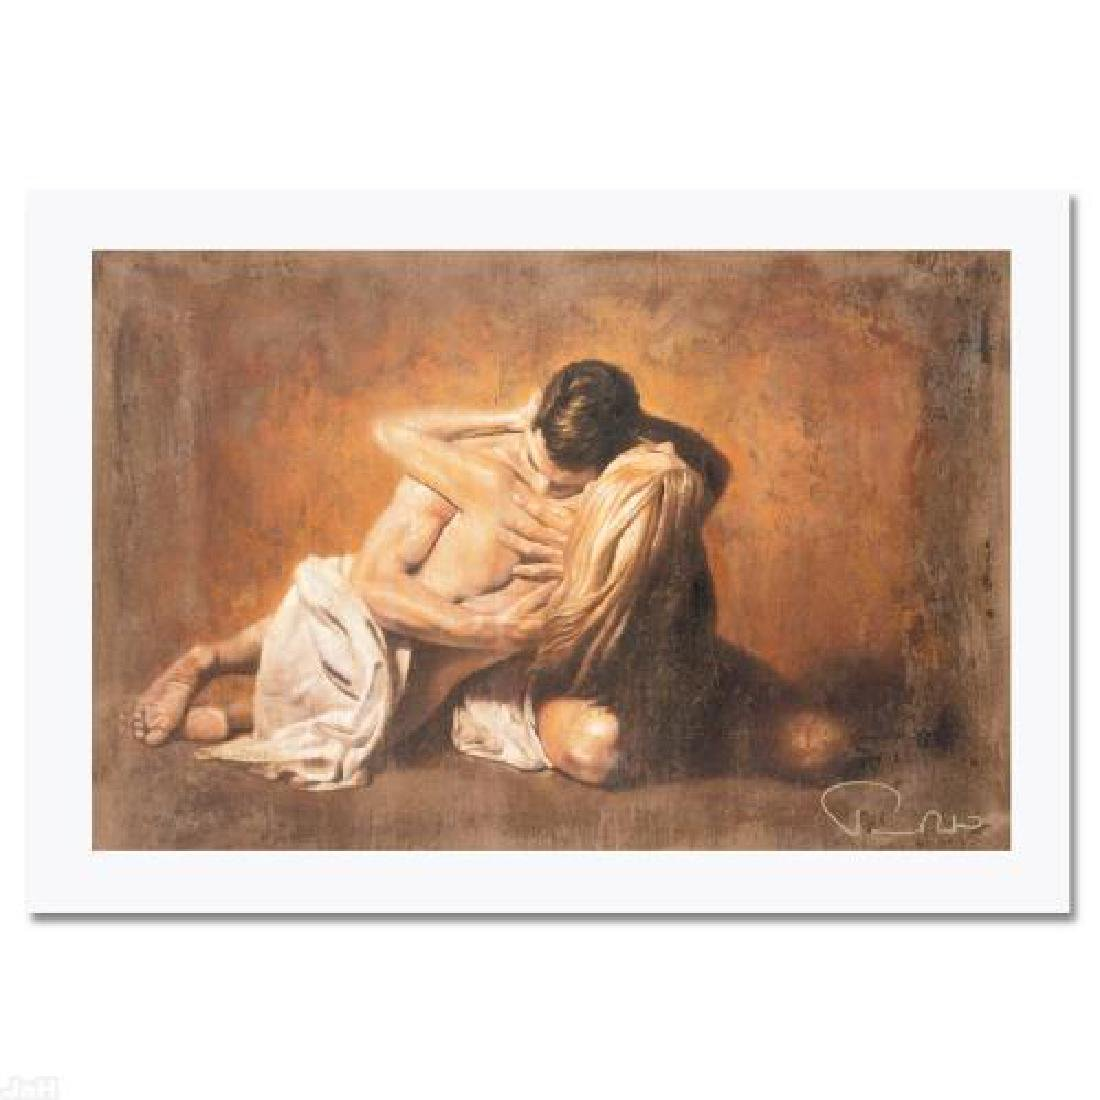 Incipesso LIMITED EDITION Giclee on Canvas by Vatican - 3